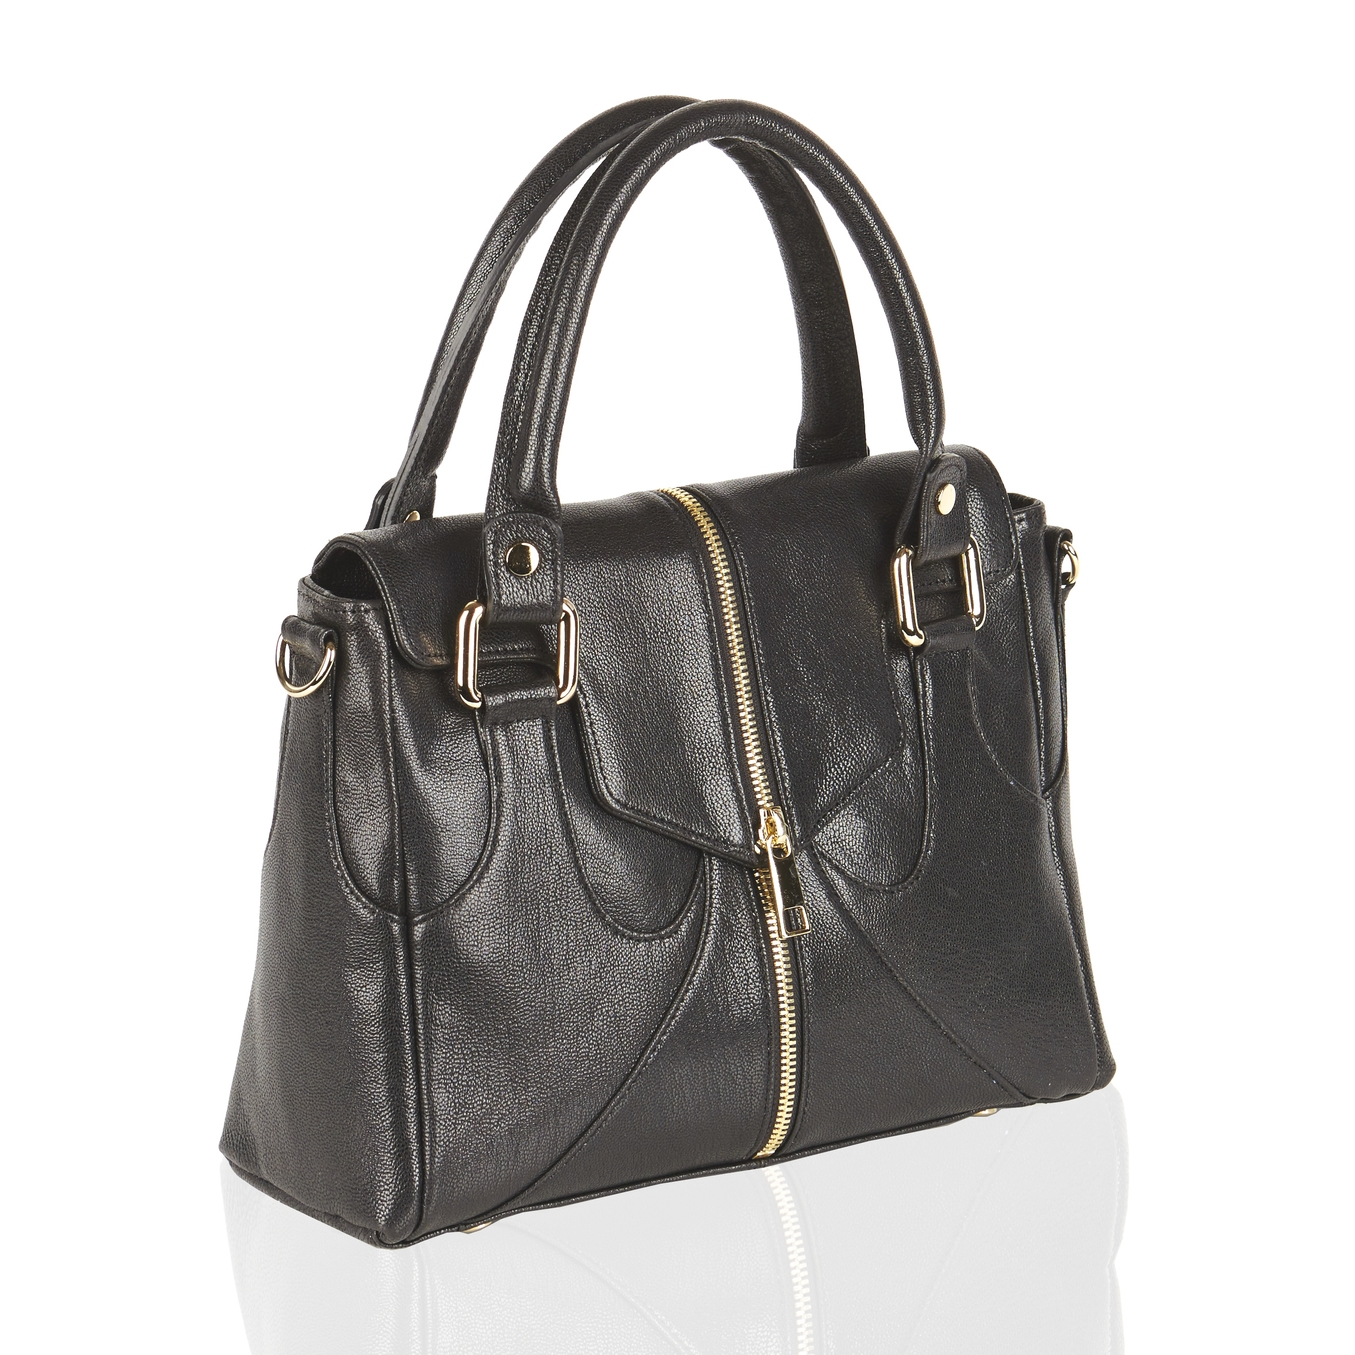 SOFTENED BLACK - $545.00